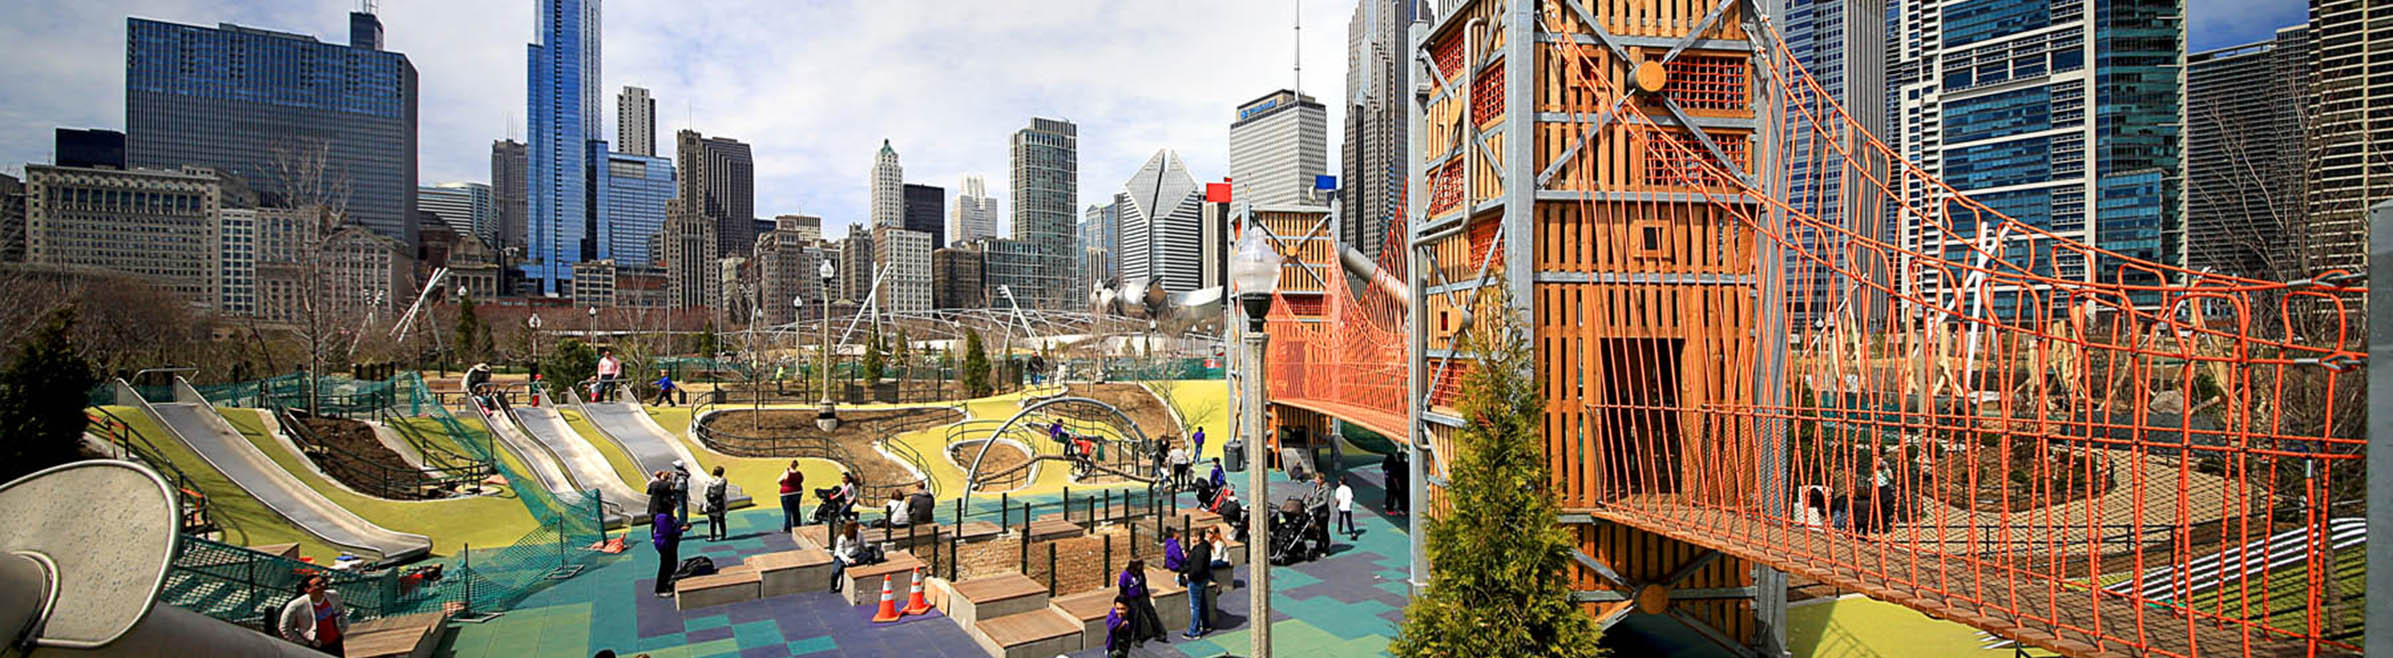 Maggie Daley Park playground